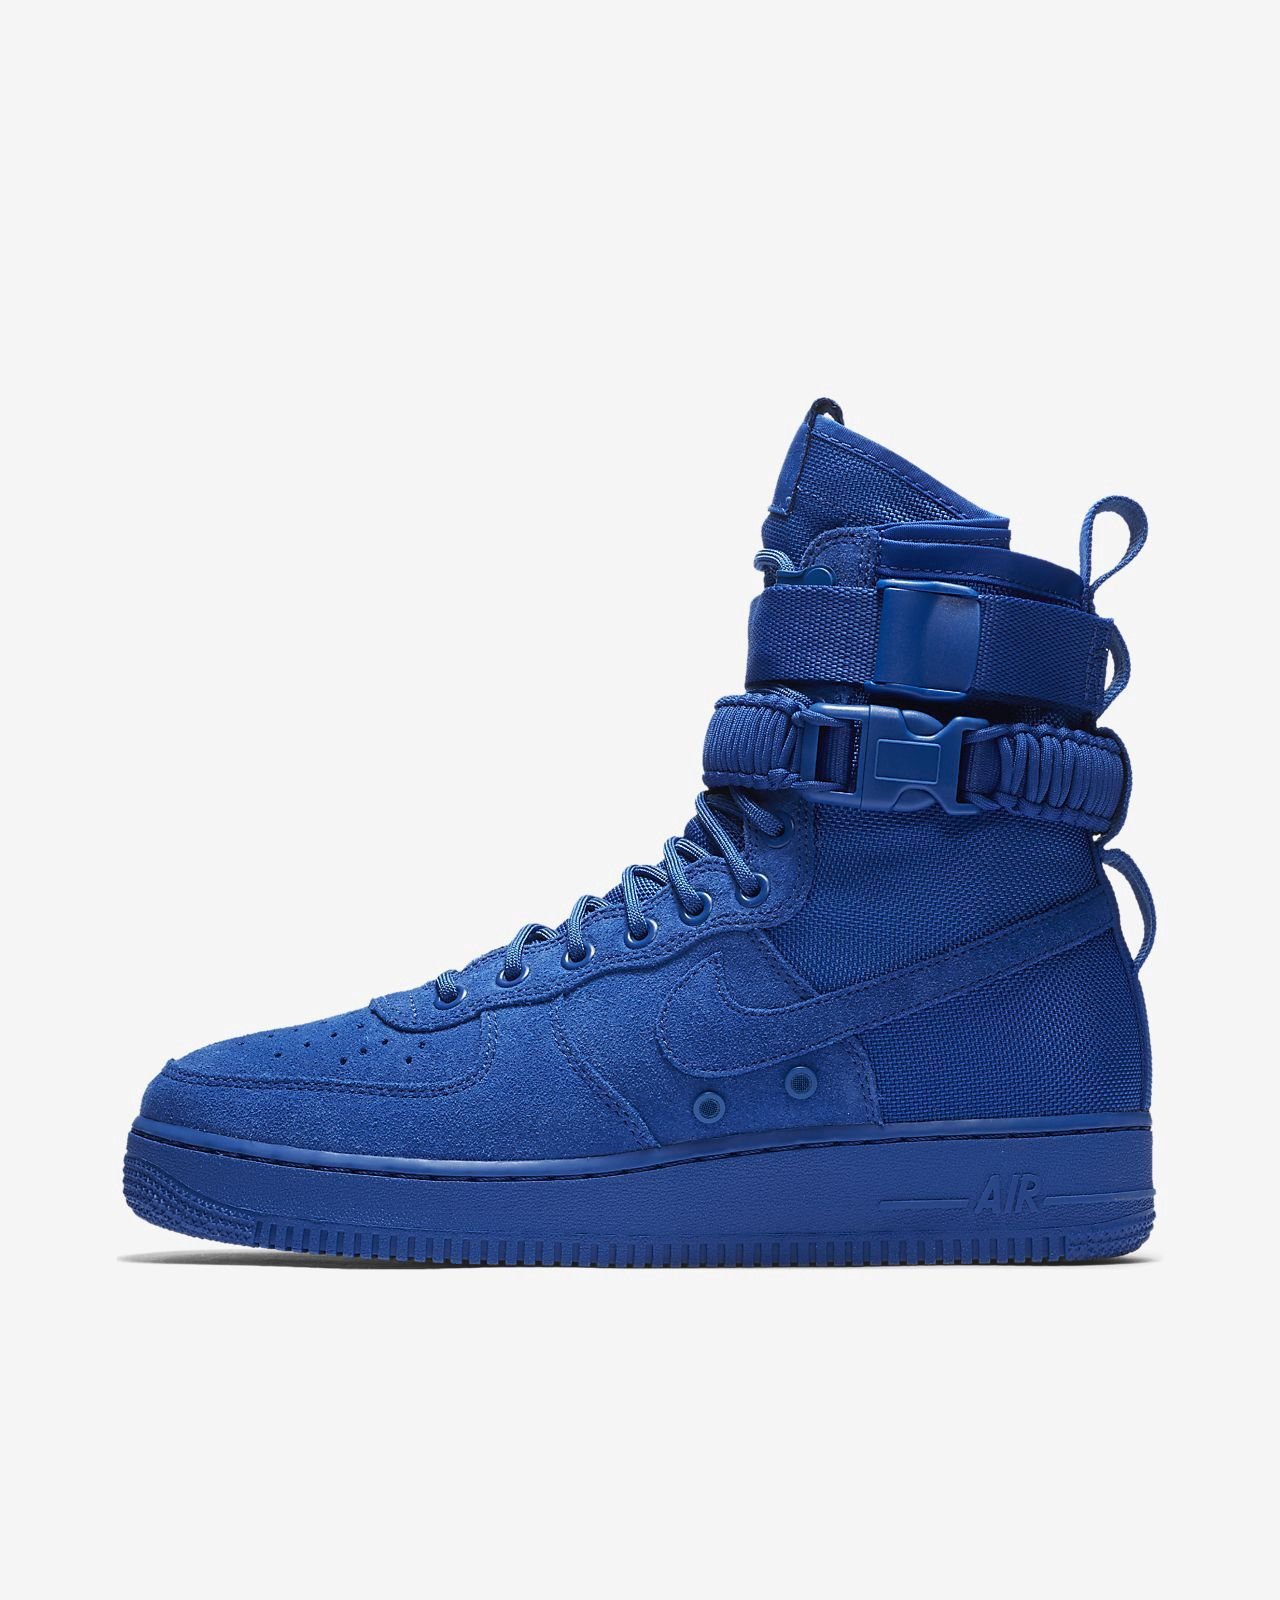 Nike Sf Air Force 1 Mens Boot 10.5 | Nike boots, Nike